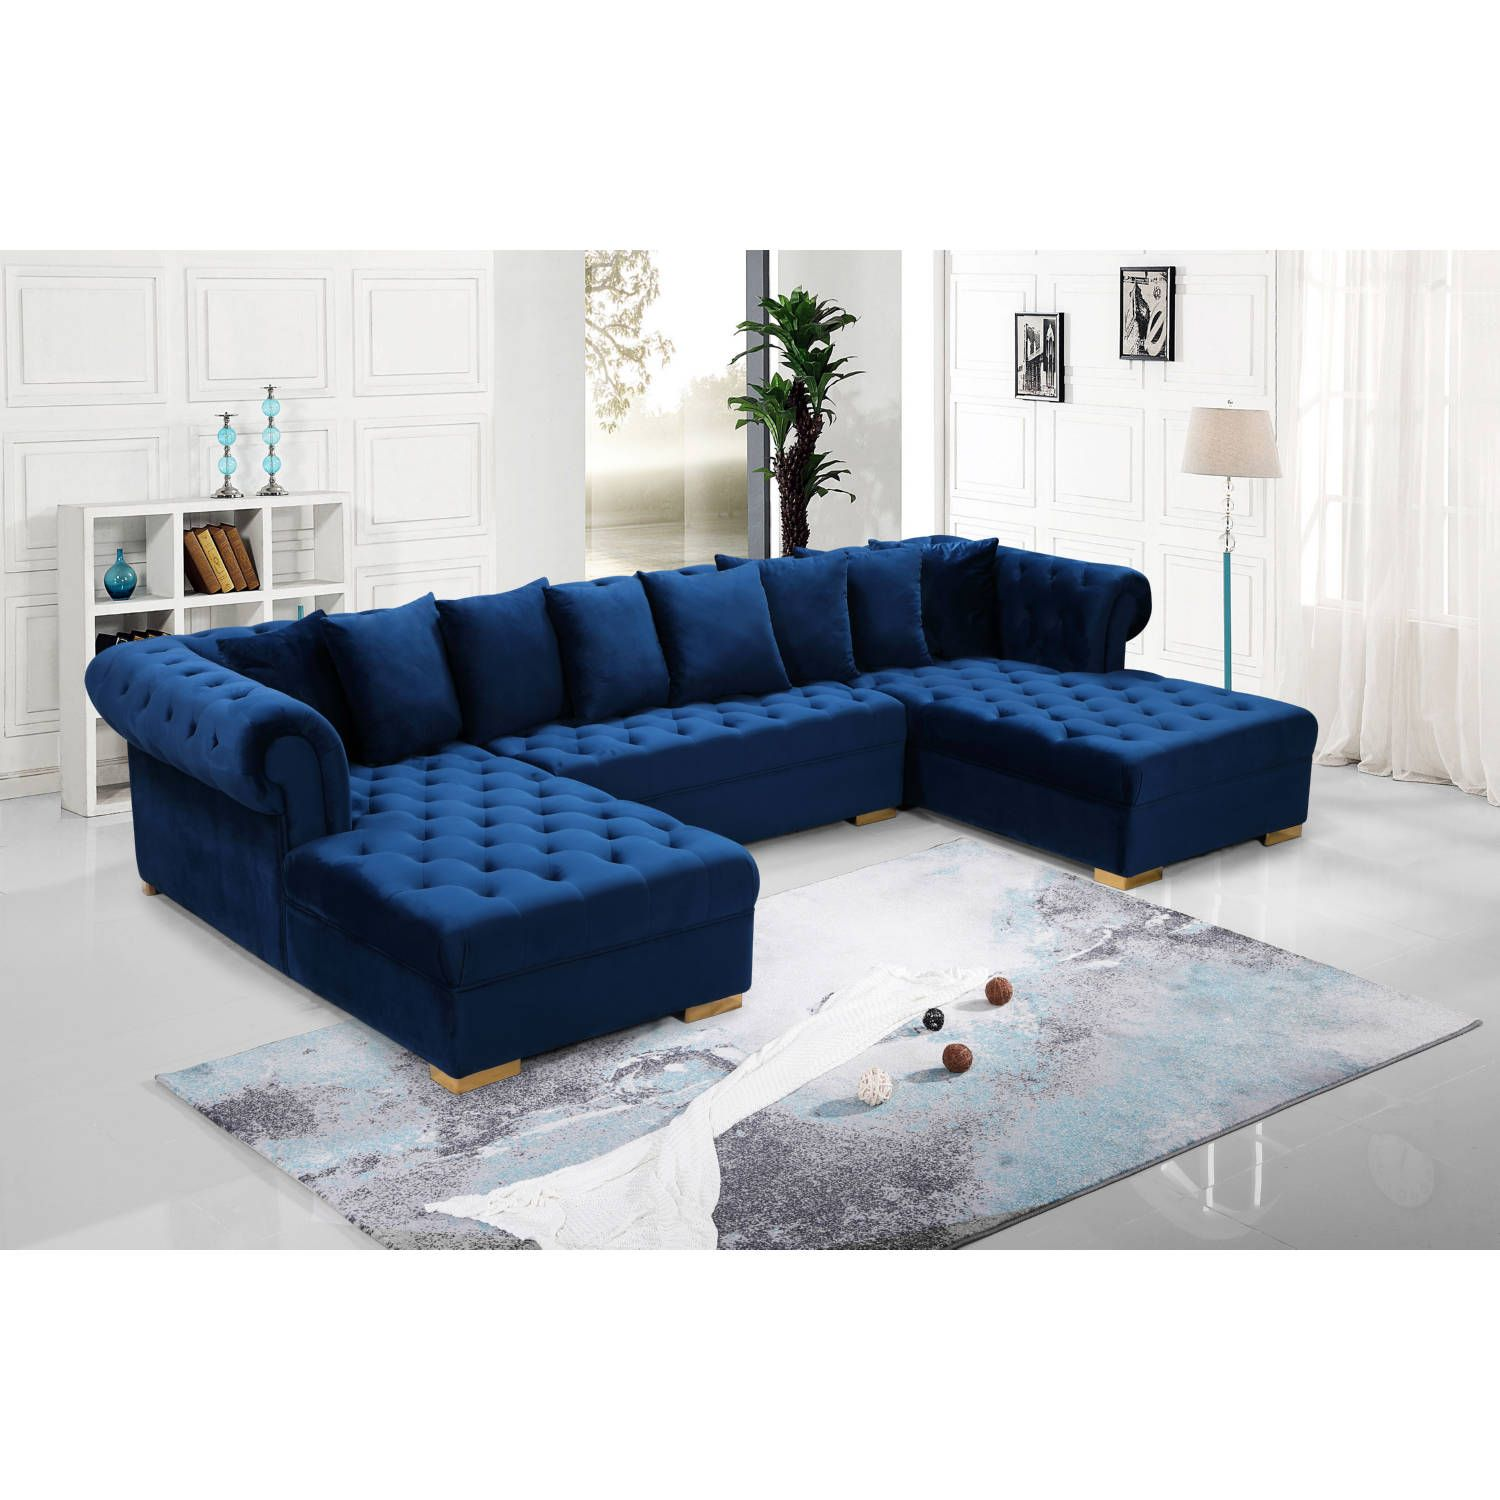 Dynamic Home Decor Presley 3 Piece Sectional Sofa In Tufted Navy Blue Velvet Sectional Sofas Living Room Sectional Sofa Meridian Furniture